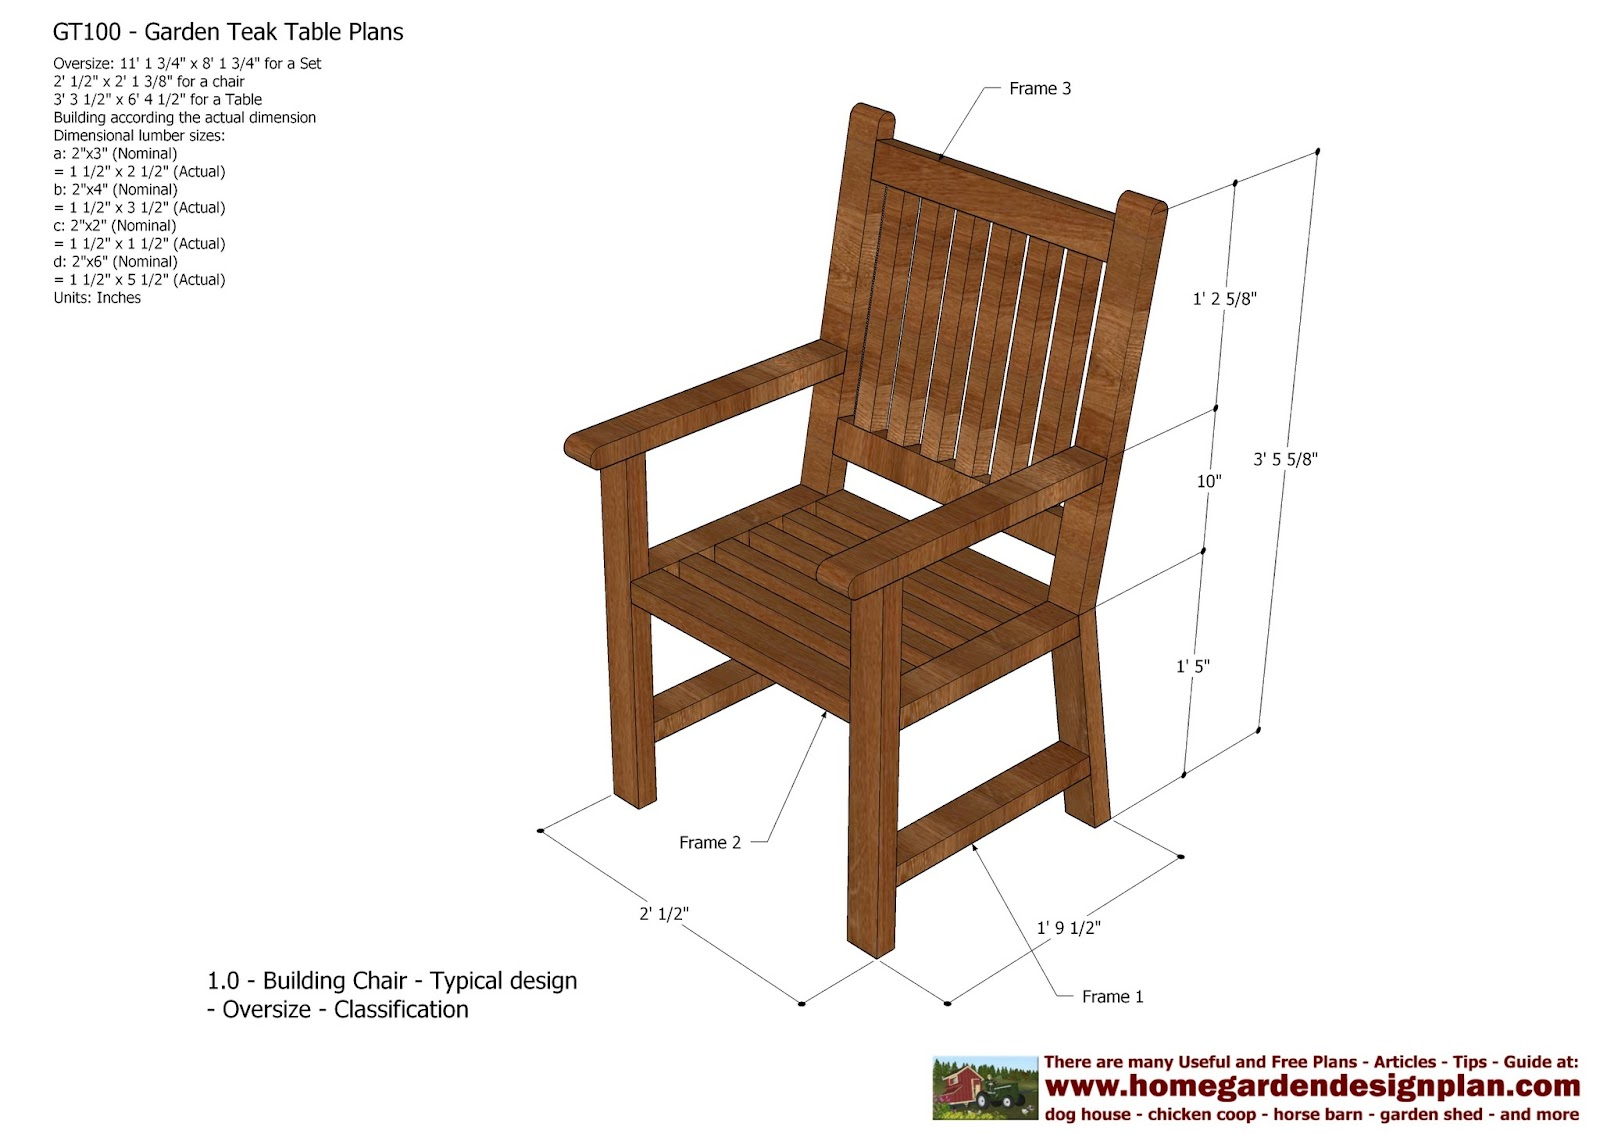 home garden plans GT100 Garden Teak Tables Woodworking Plans – Patio Furniture Plans Free